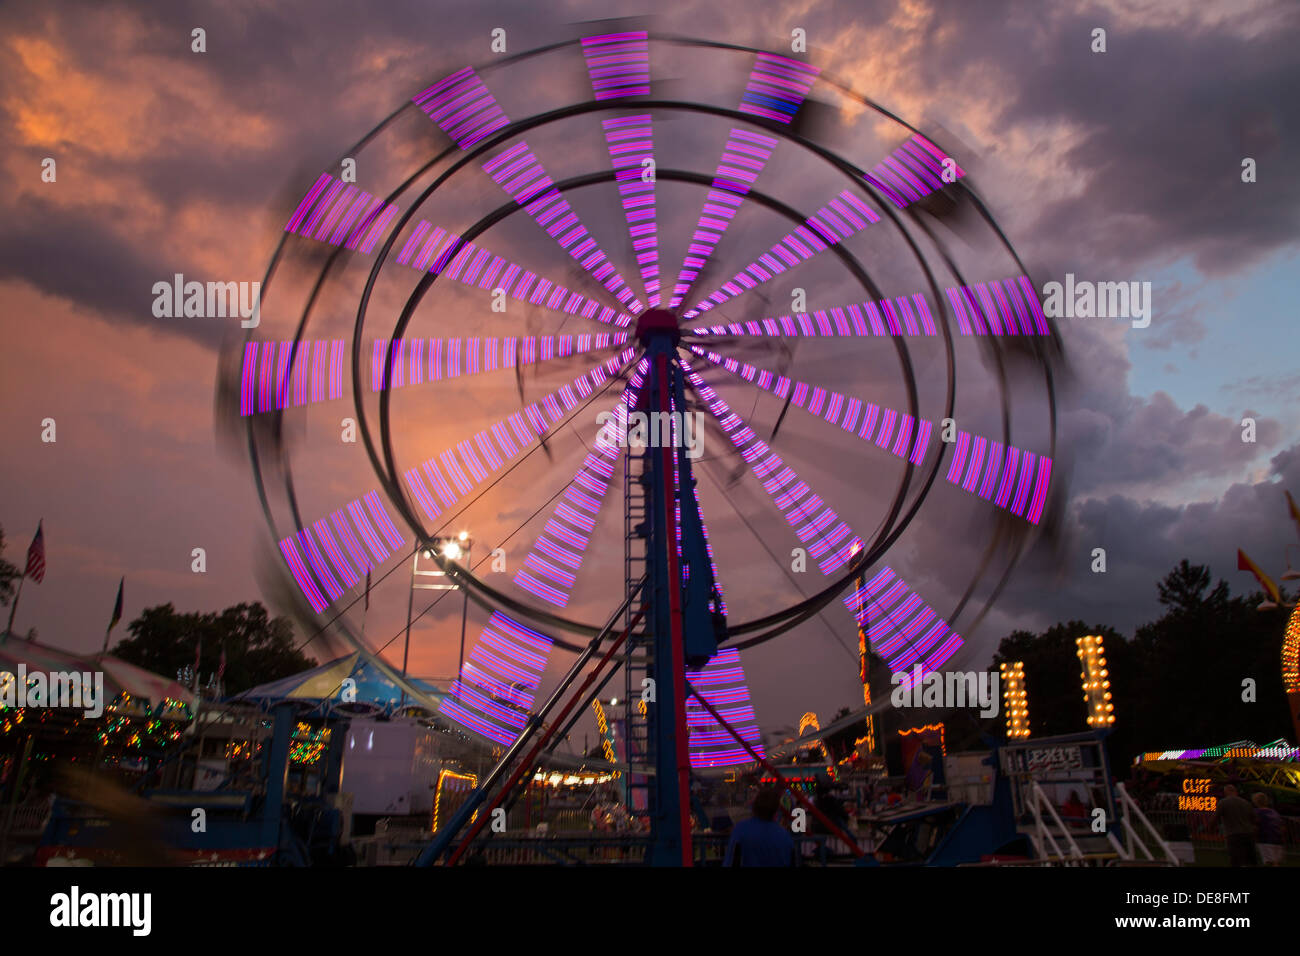 Chatham, New York - A ferris wheel at the Columbia County Fair. Stock Photo